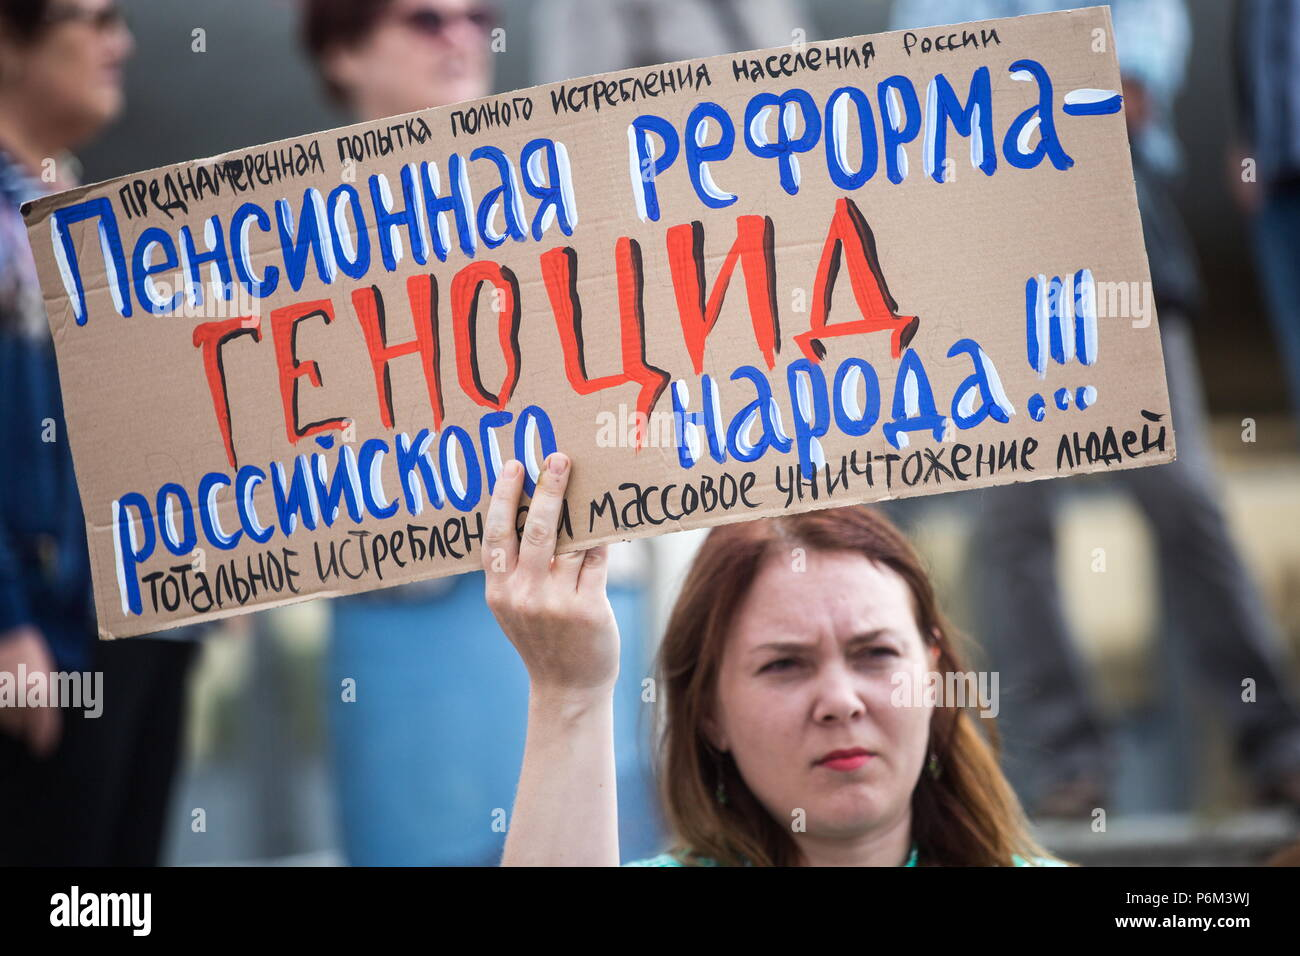 Omsk, Russia. 01st July, 2018. OMSK, RUSSIA - JULY 1, 2018: A woman takes part in a protest against a draft law proposed by the Russian government to raise the retirement age for men from 60 to 65 years old and for women from 55 to 63 years old. Dmitry Feoktistov/TASS Credit: ITAR-TASS News Agency/Alamy Live News - Stock Image